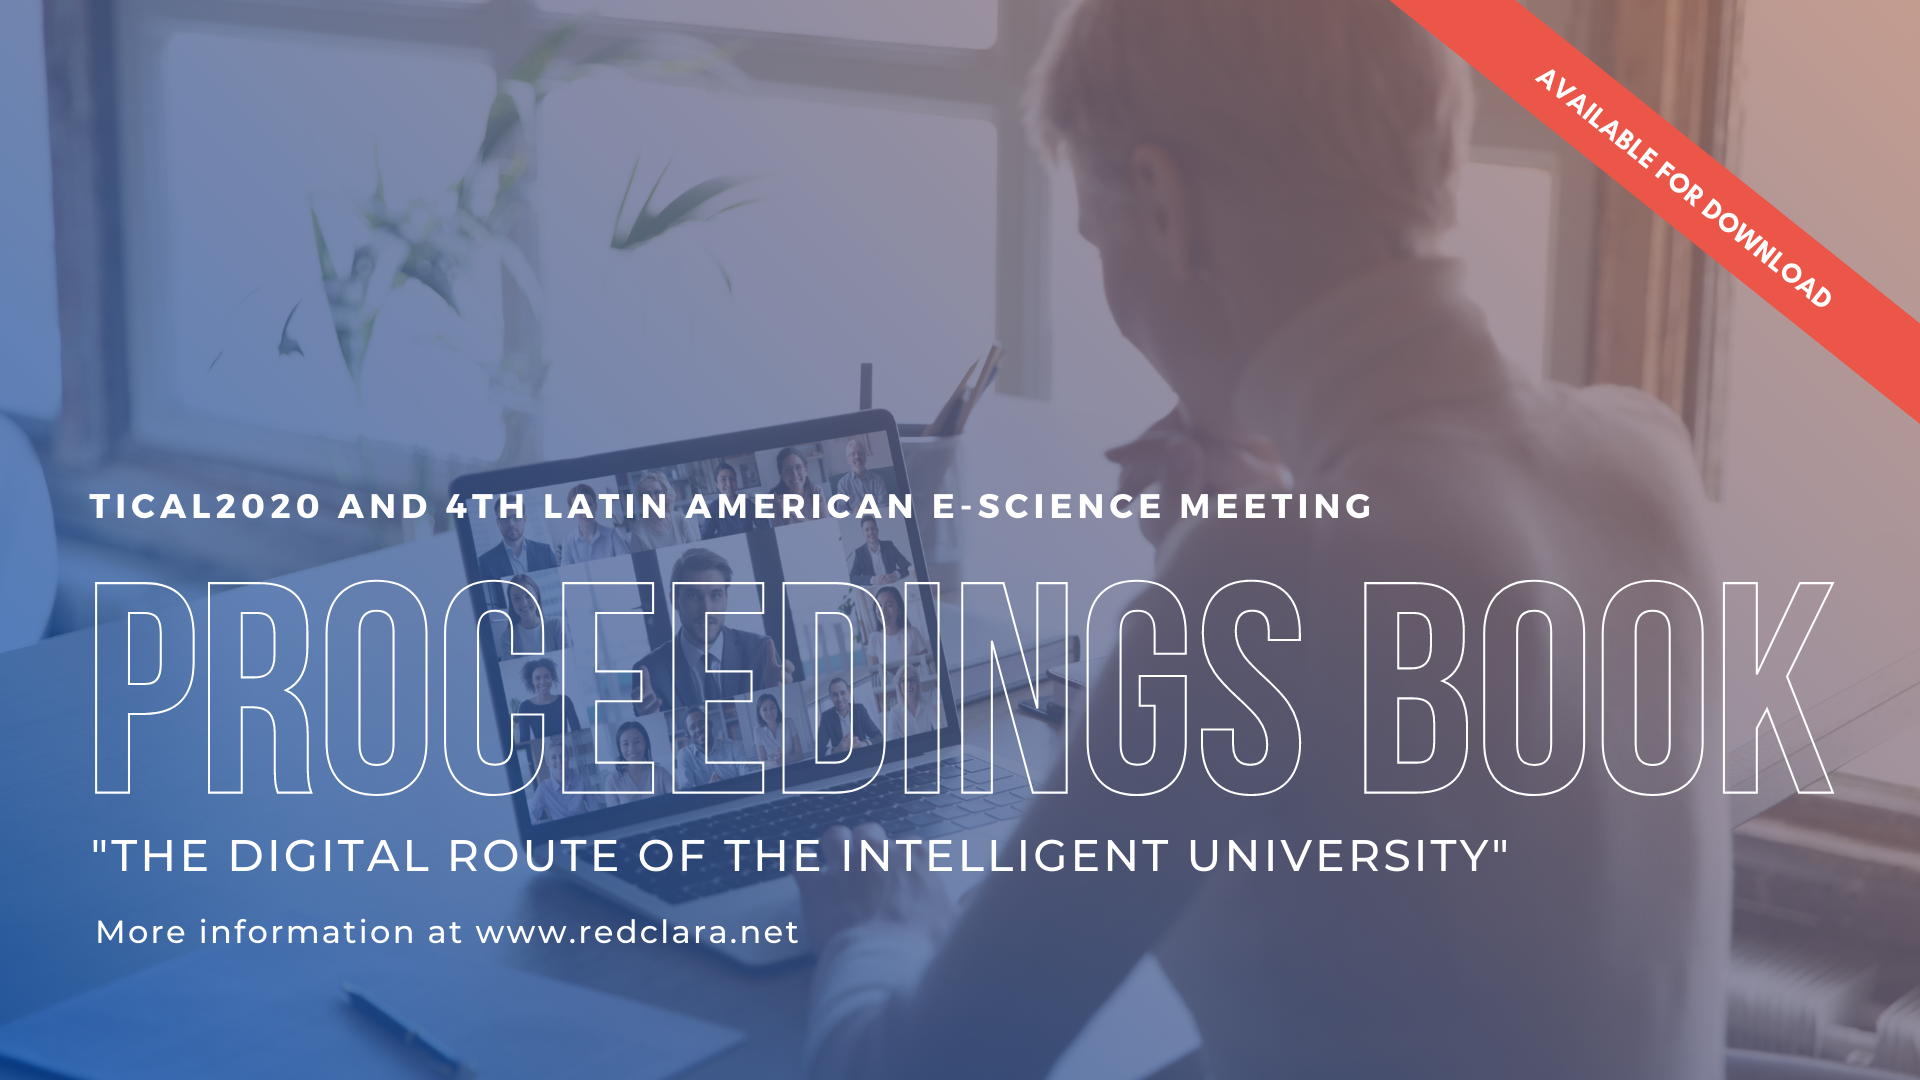 TICAL2020 and the 4th Latin American e-Science Meeting Proceedings Book is now available online for download